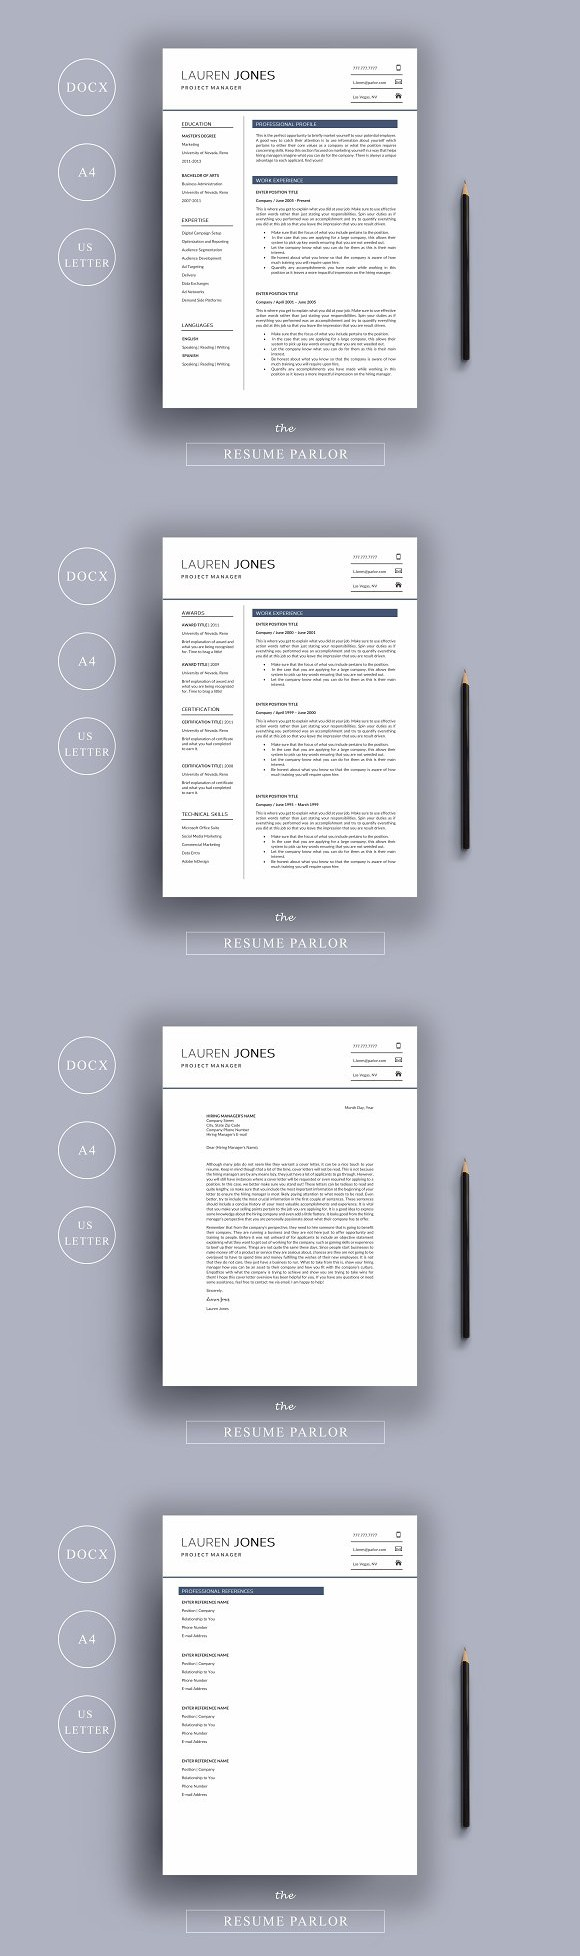 resume 4 page